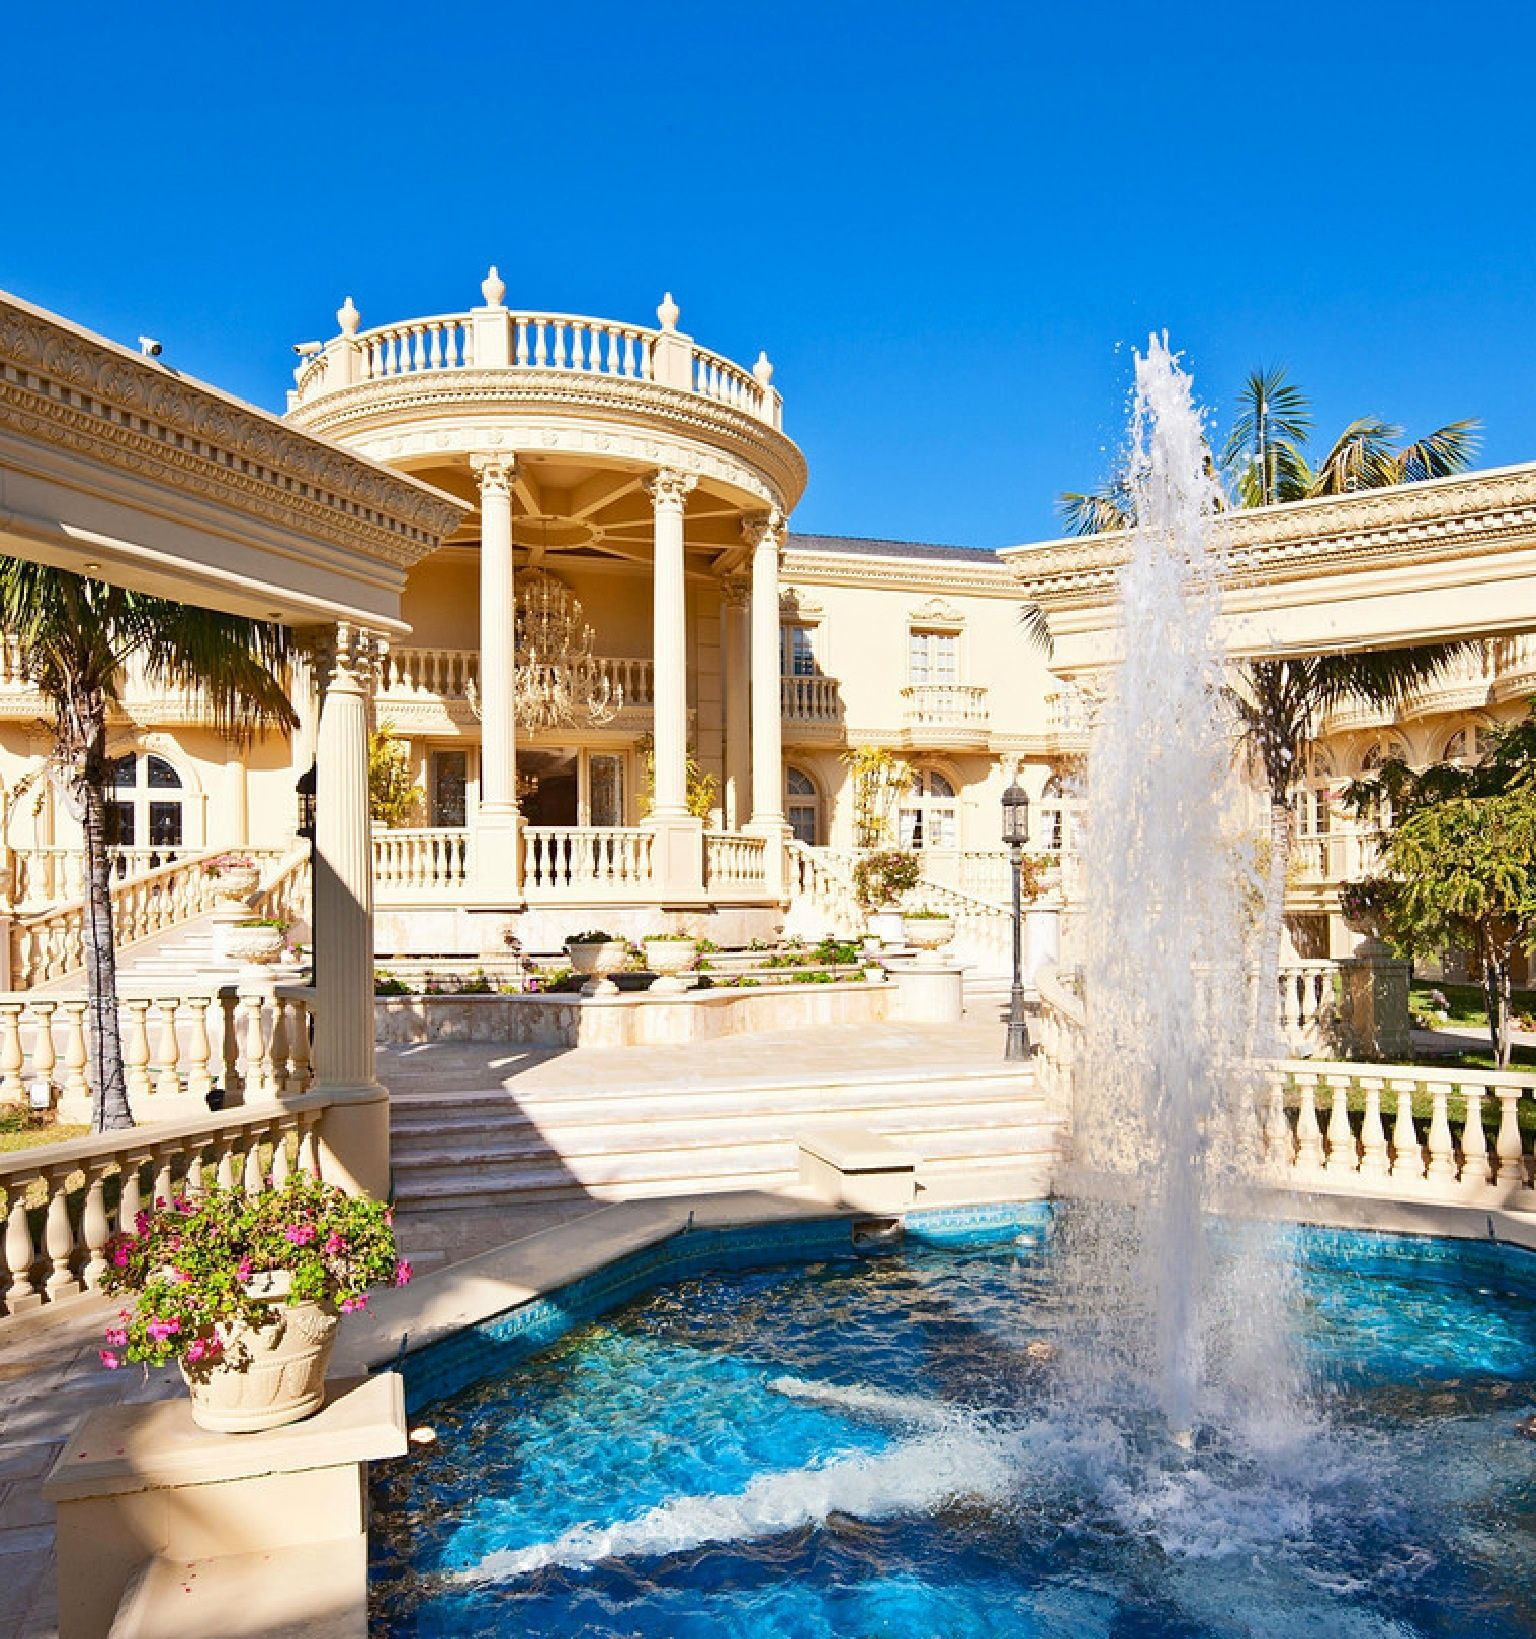 beverly hills house luxury homes most beautiful homes most expensive homes luxury - Big Houses With Pools Inside The House